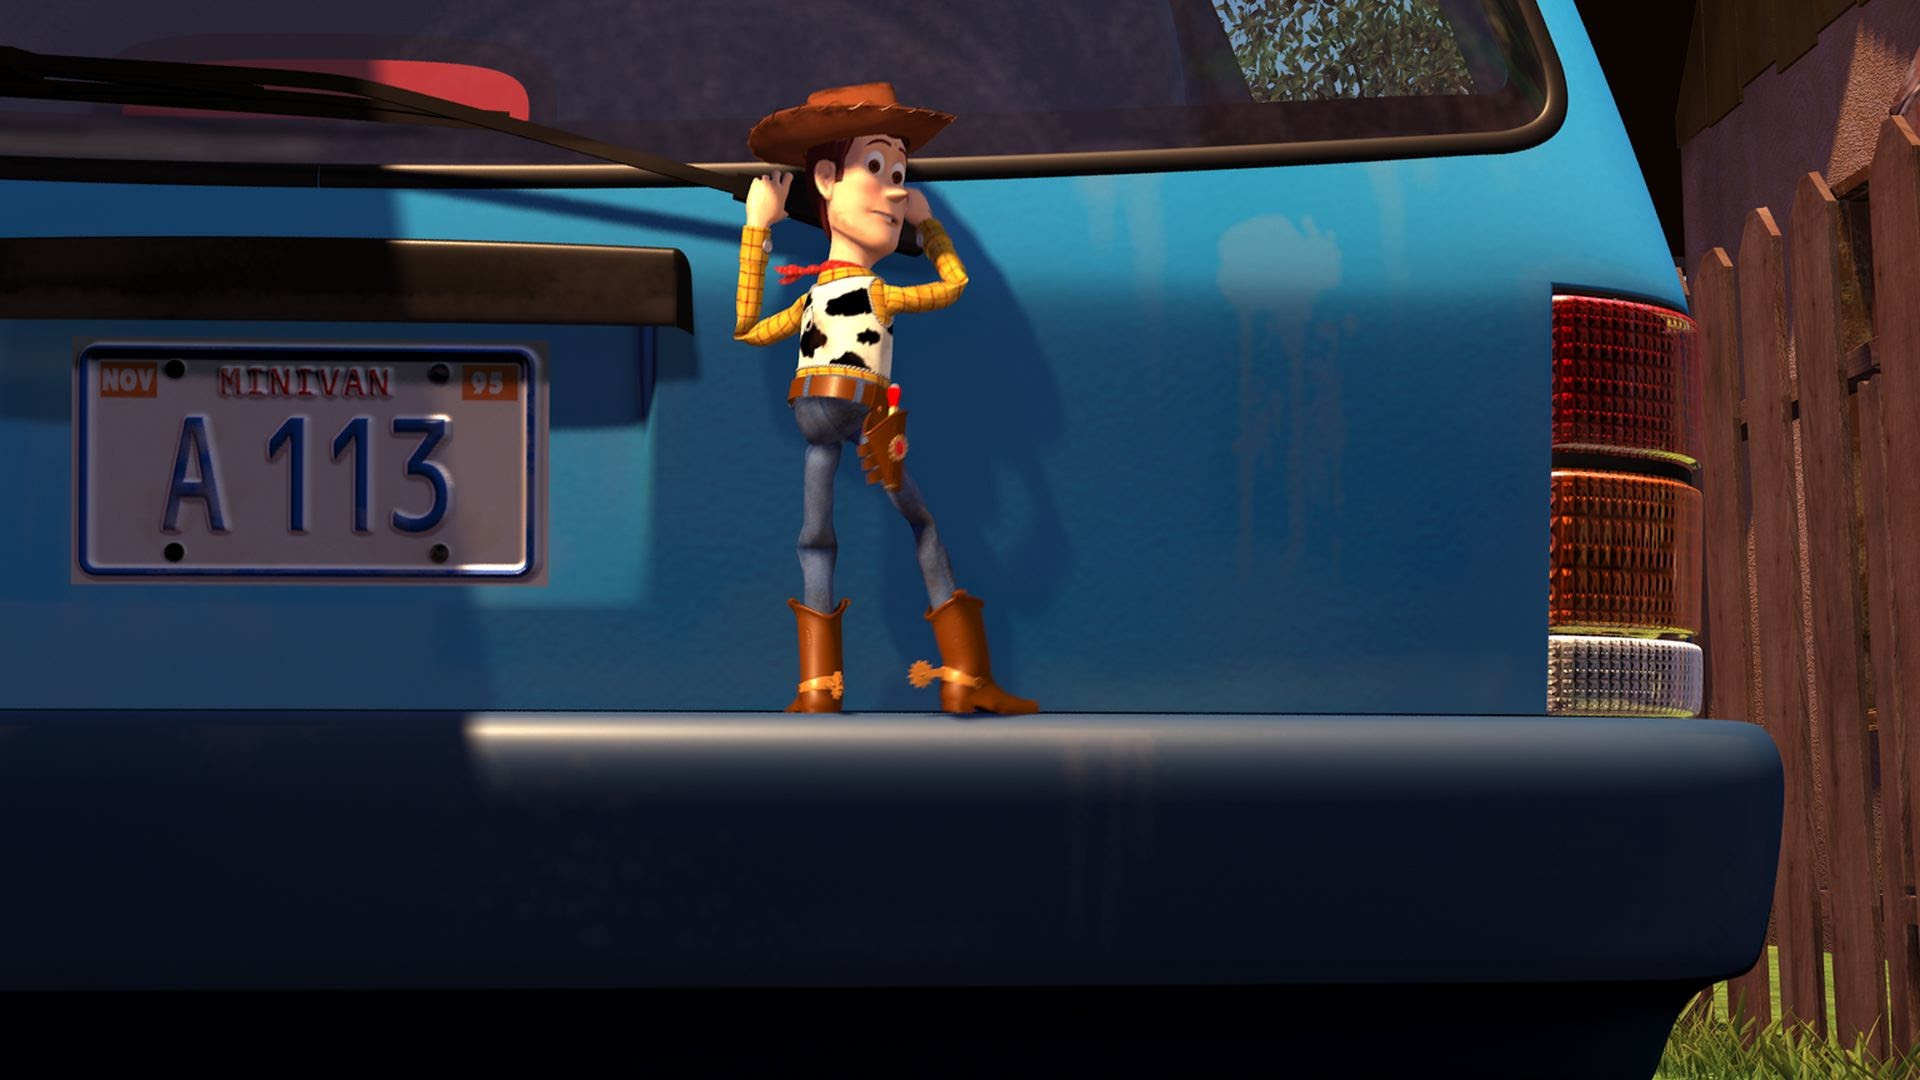 Andys Wallpaper Toy Story 66 Images Images, Photos, Reviews